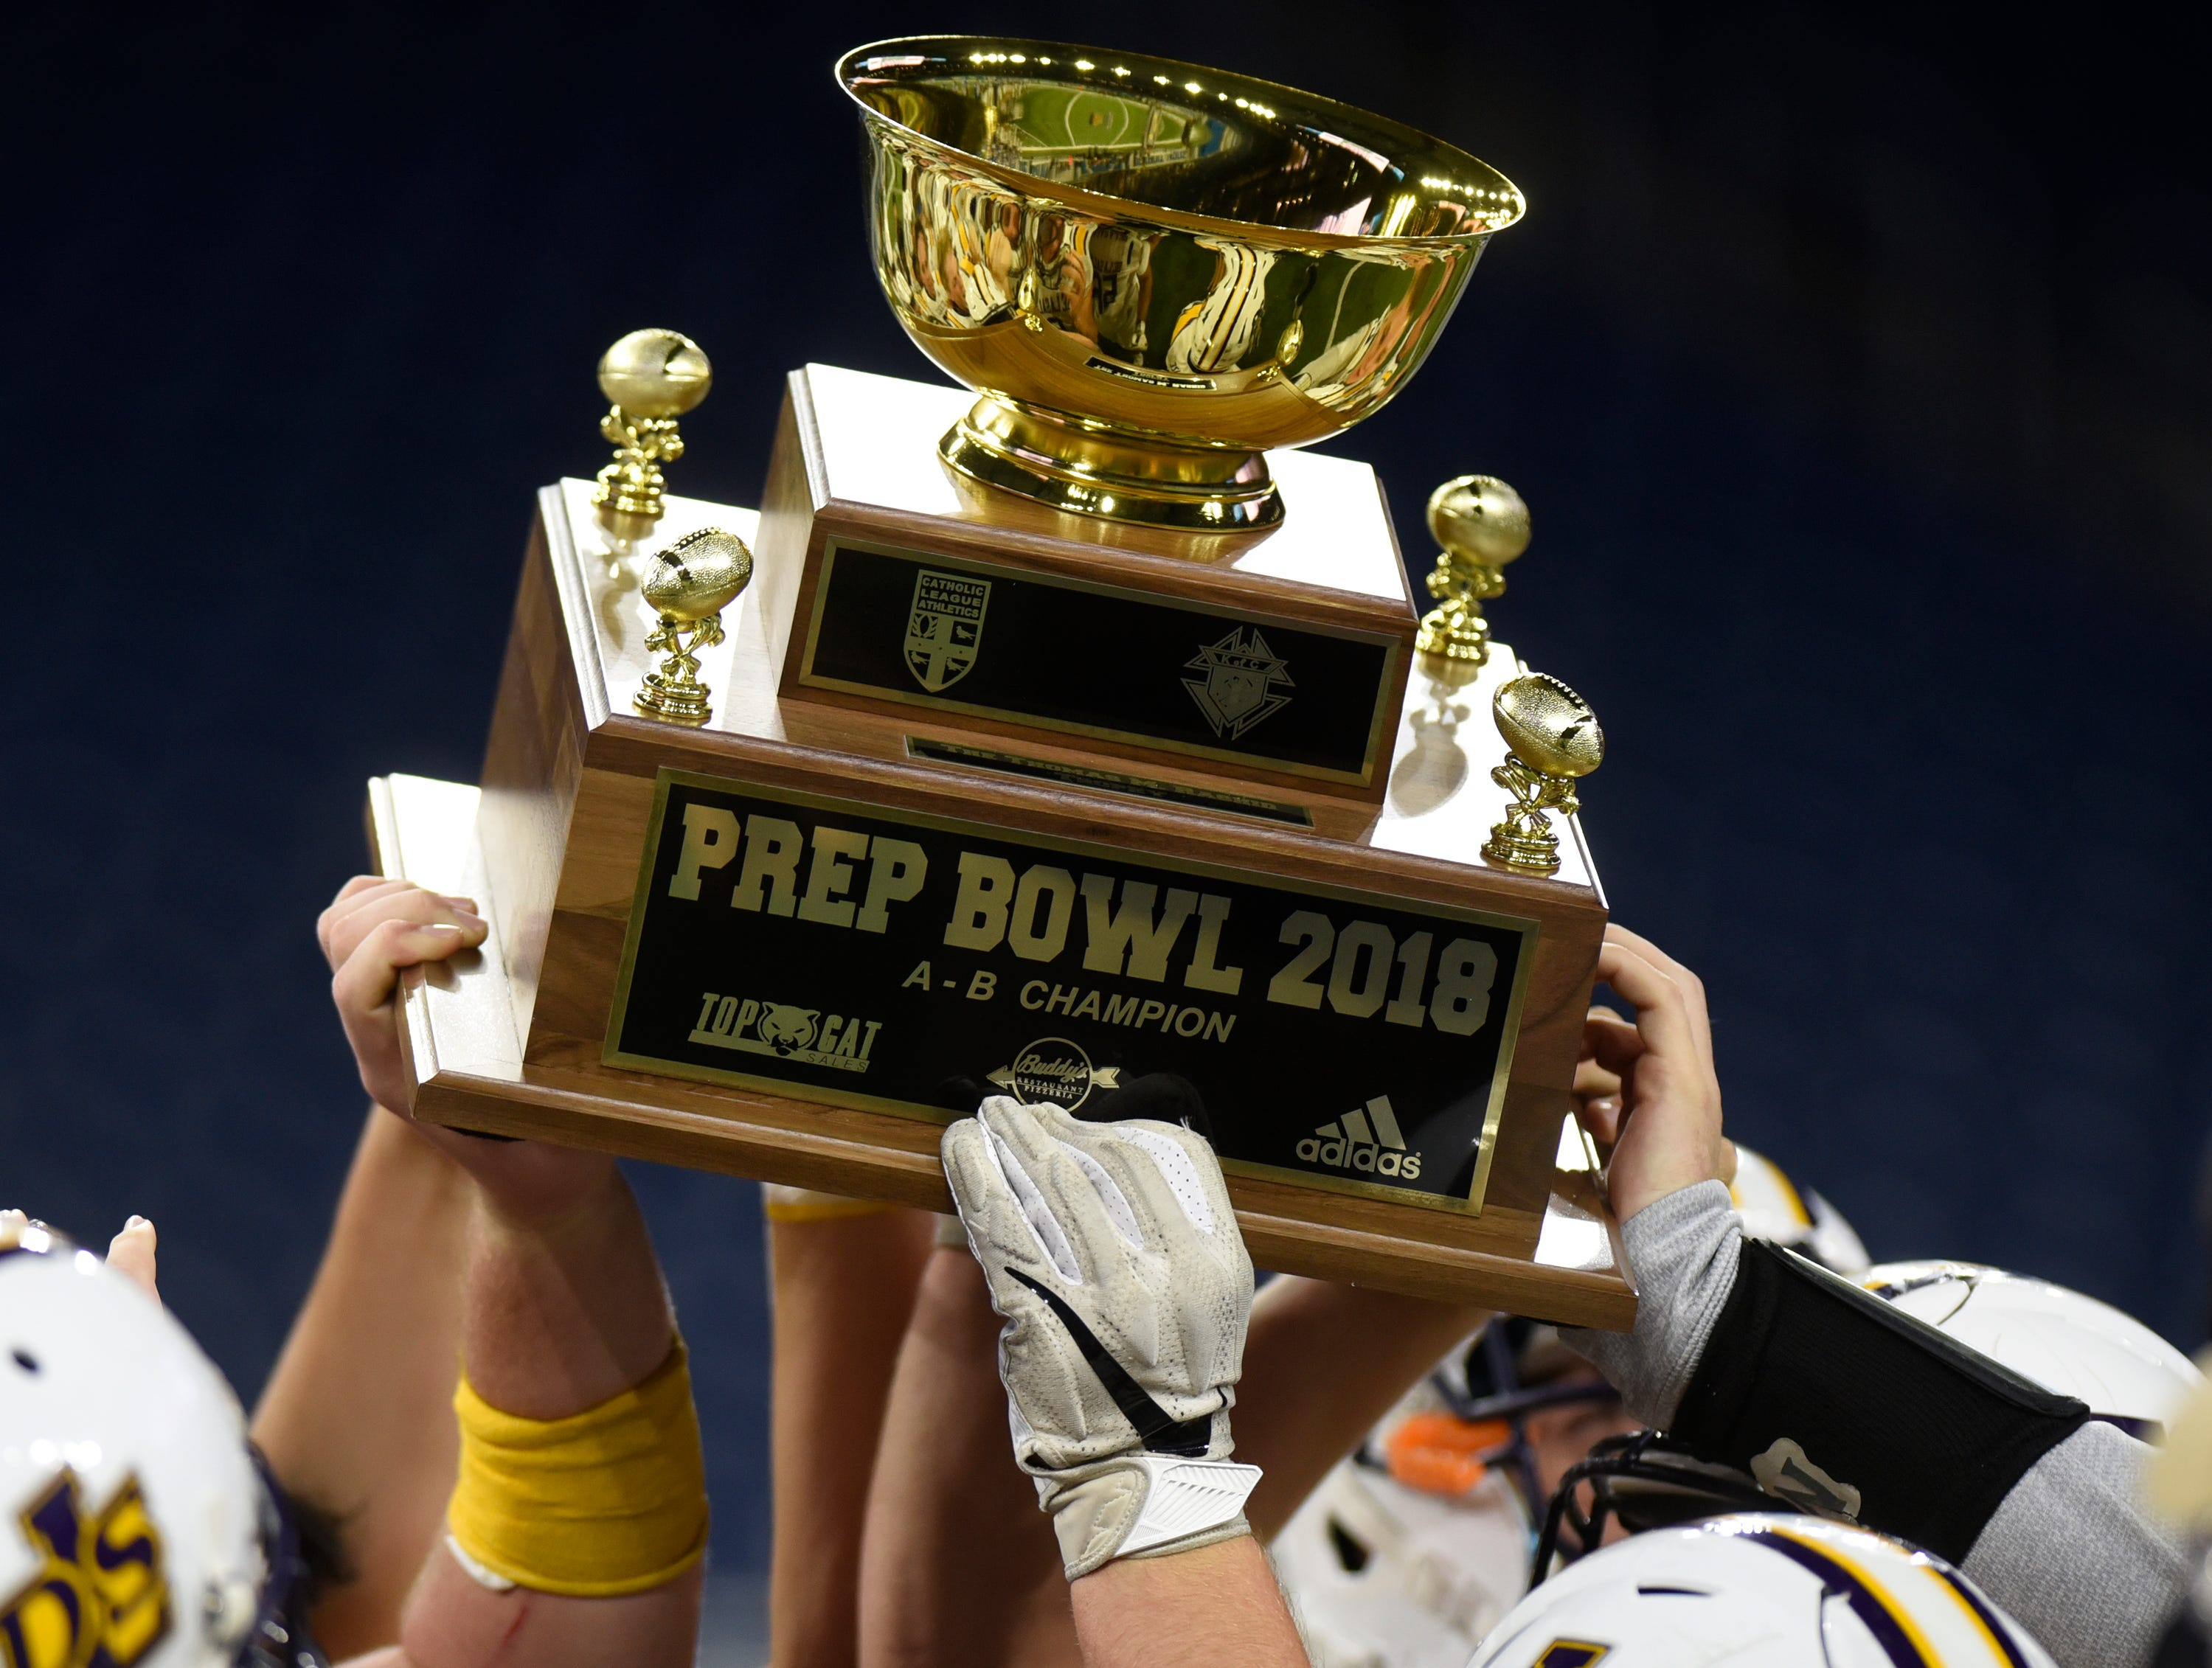 Warren De La Salle players hold up the championship trophy after defeating Detroit Catholic Central 24-6 in he Catholic League Prep Bowl AB Division title game at Ford Field Oct. 20, 2018.